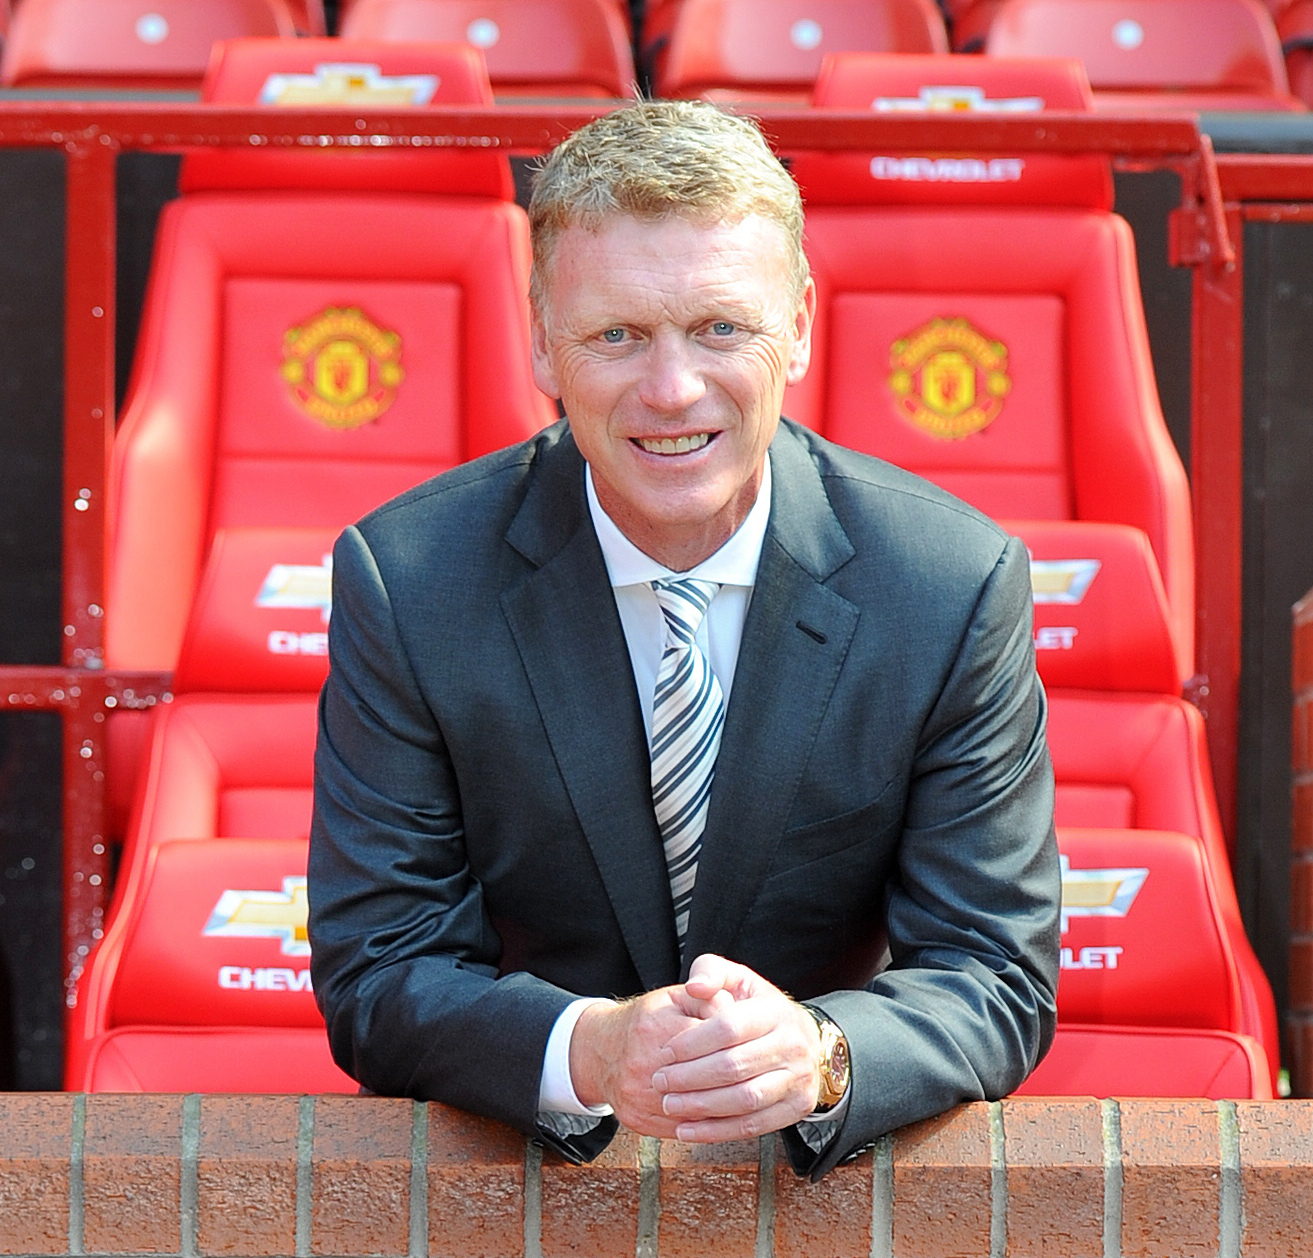 Finally official: Manchester United sack David Moyes